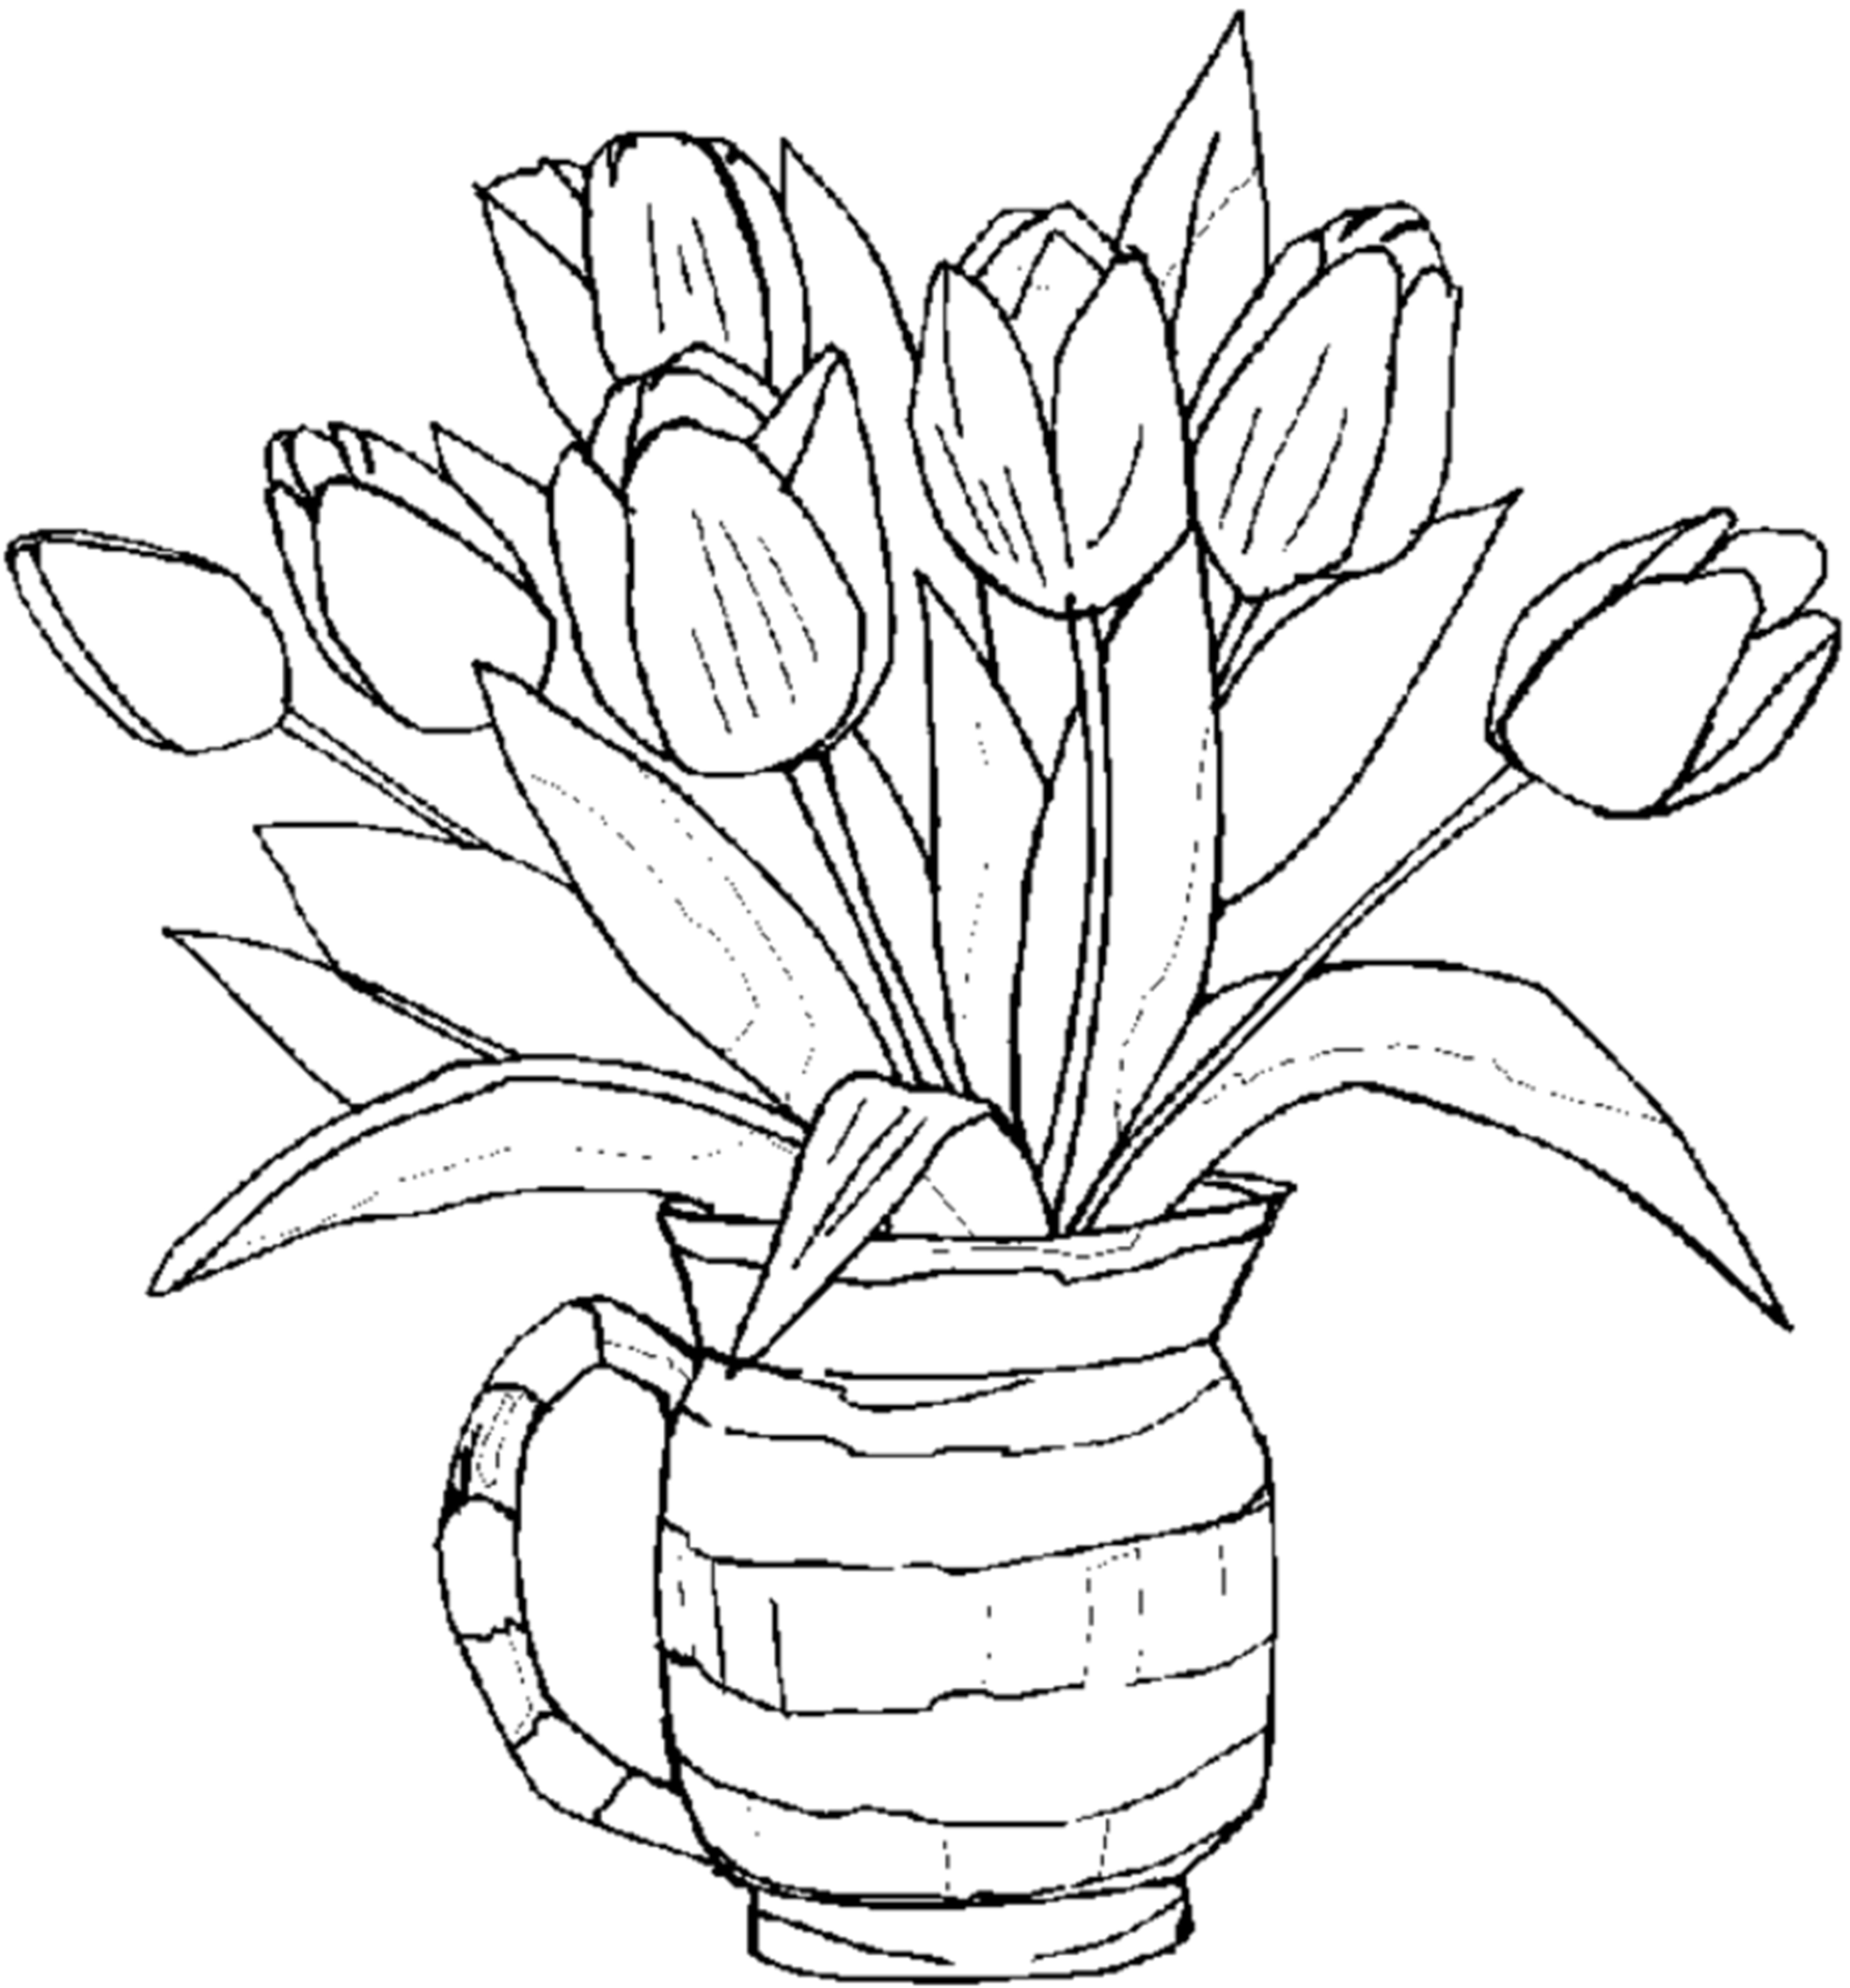 printable simple flower coloring pages sunflower drawing easy at getdrawings free download simple flower coloring pages printable